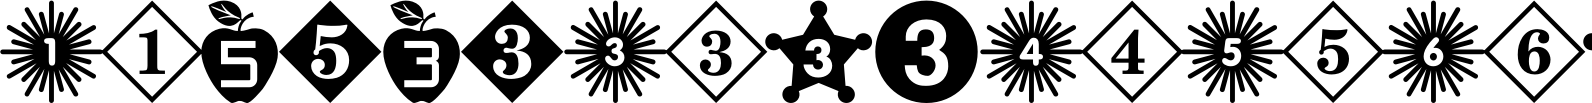 Number Ornaments